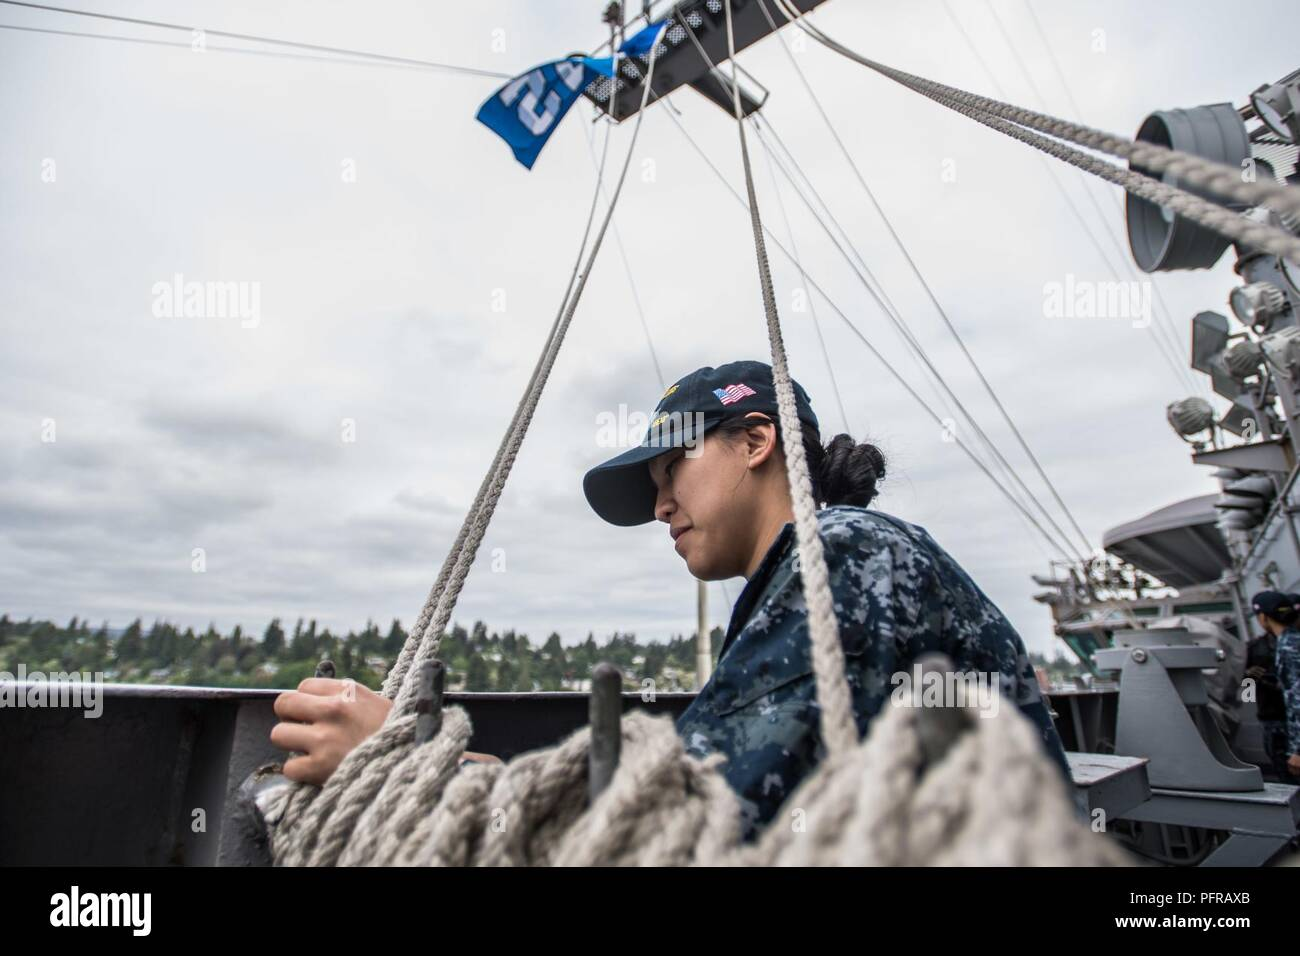 """Wash. (May 25, 2018) Airman Macey Zuniga, from Mililani Town, Hawaii, raises the """"12th Man"""" flag aboard the aircraft carrier USS John C. Stennis (CVN 74). The Seattle Seahawks football team and Sea Gals cheerleaders held a military appreciation event aboard John C. Stennis to meet and visit with Sailors. John C. Stennis is pier-side after returning to homeport after the completion of a seven-week underway where the ship's crew completed TSTA/FEP early and Carrier Strike Group 3 Group Sail in preparation for its next scheduled deployment. Stock Photo"""